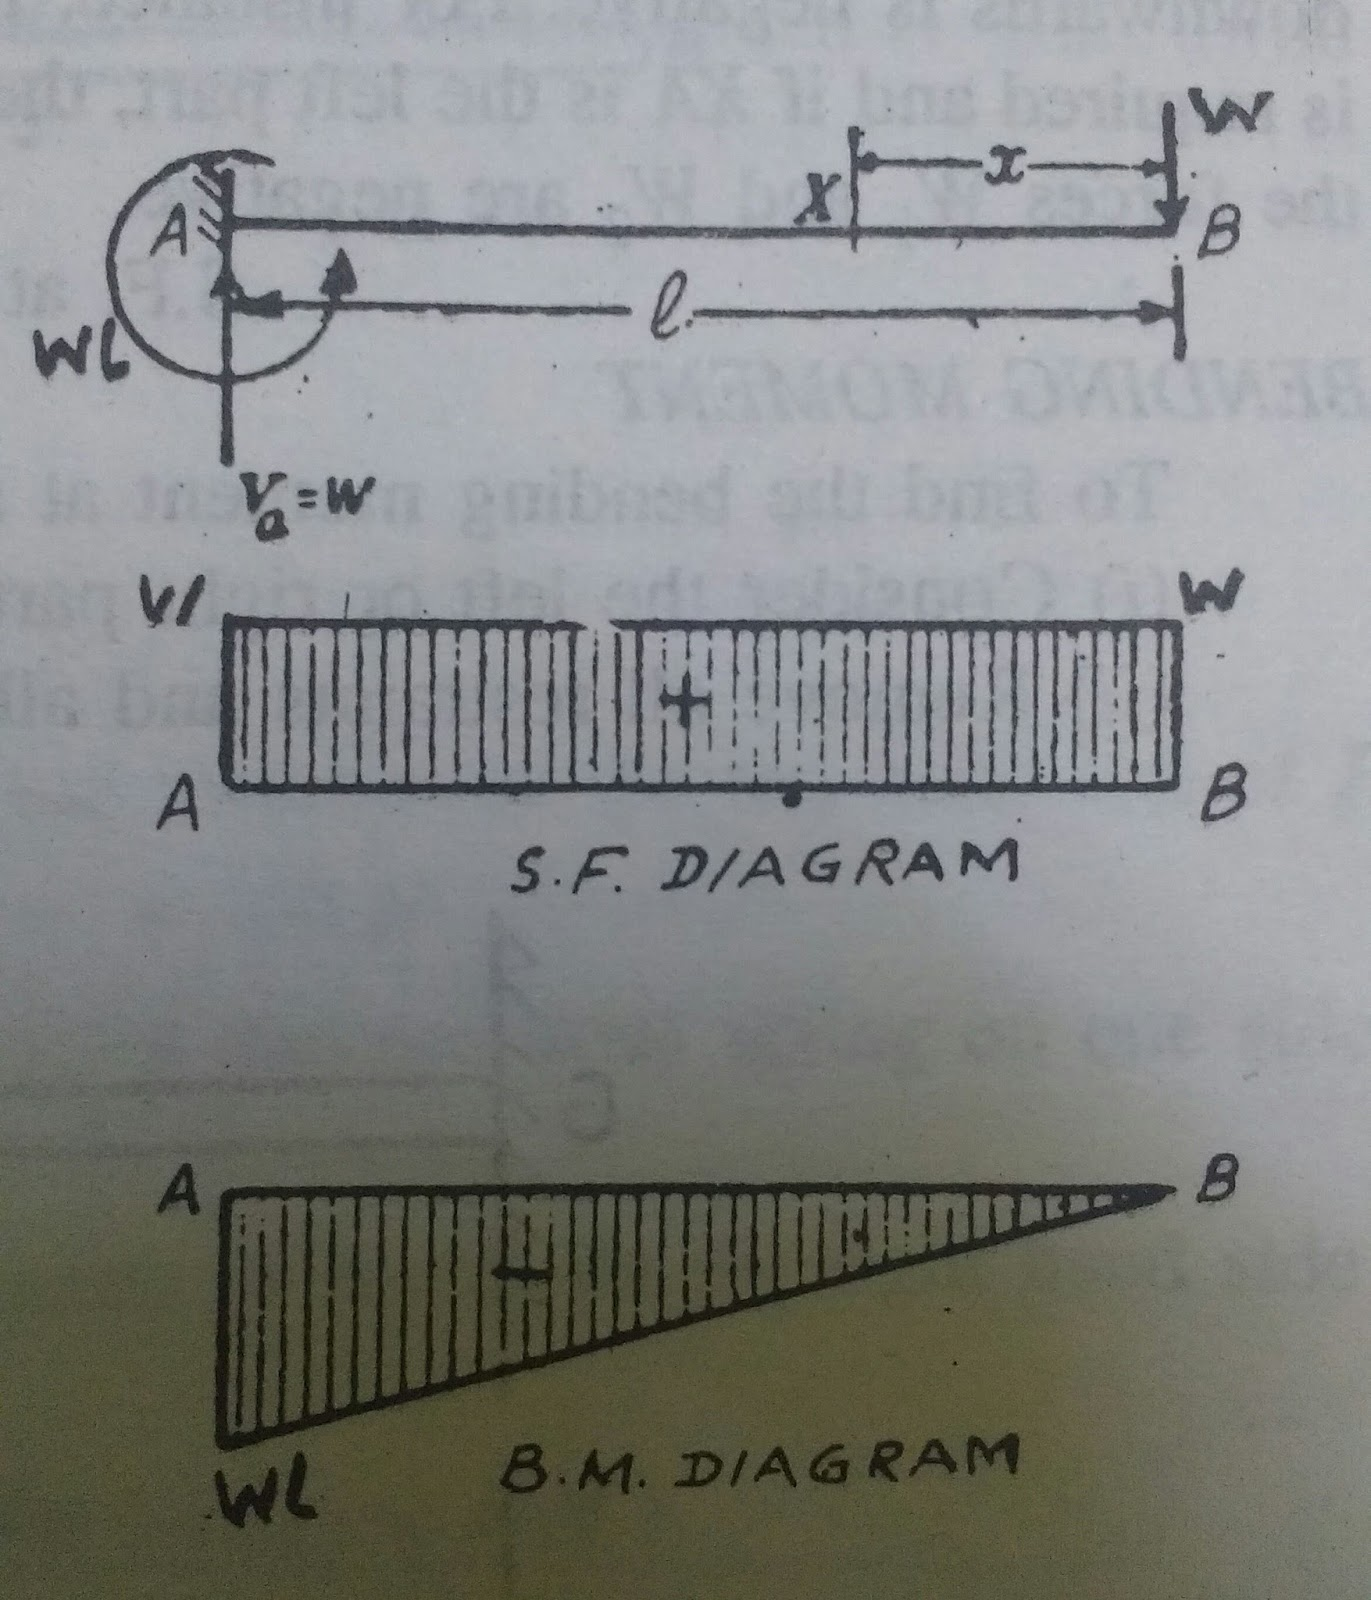 Basic Civil Engineering What Is Shear Force And Bending Moment Diagram Diagrams